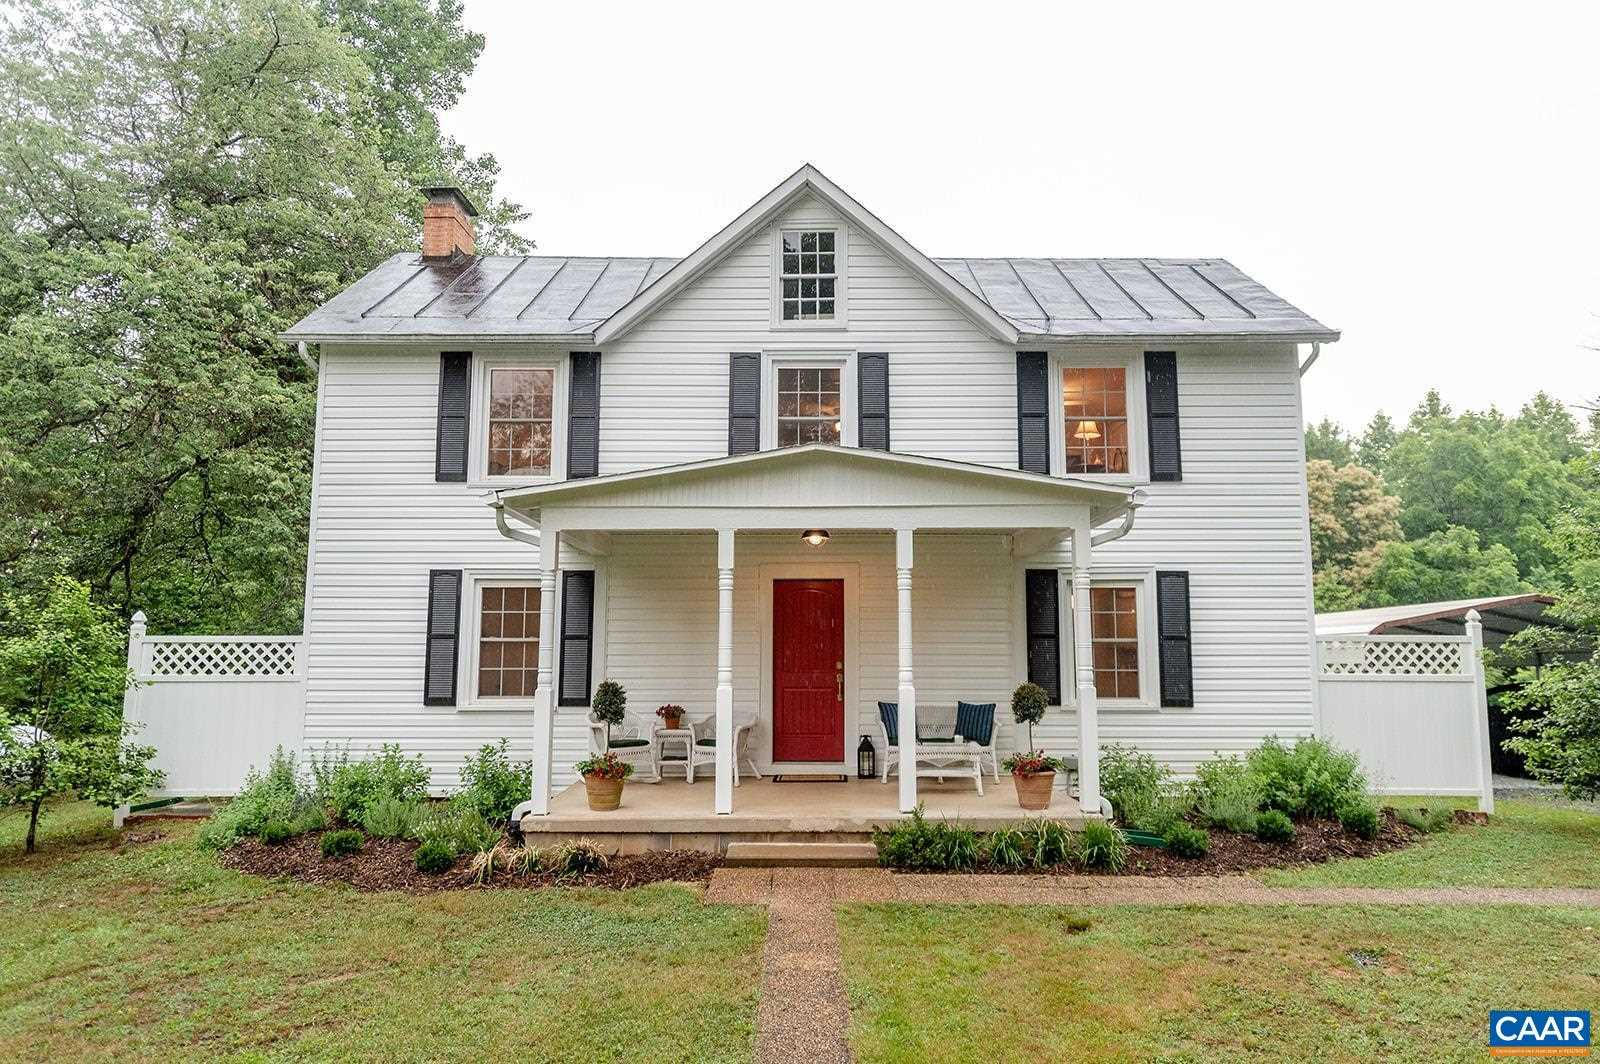 $326,000 - 3Br/1Ba -  for Sale in None, Esmont